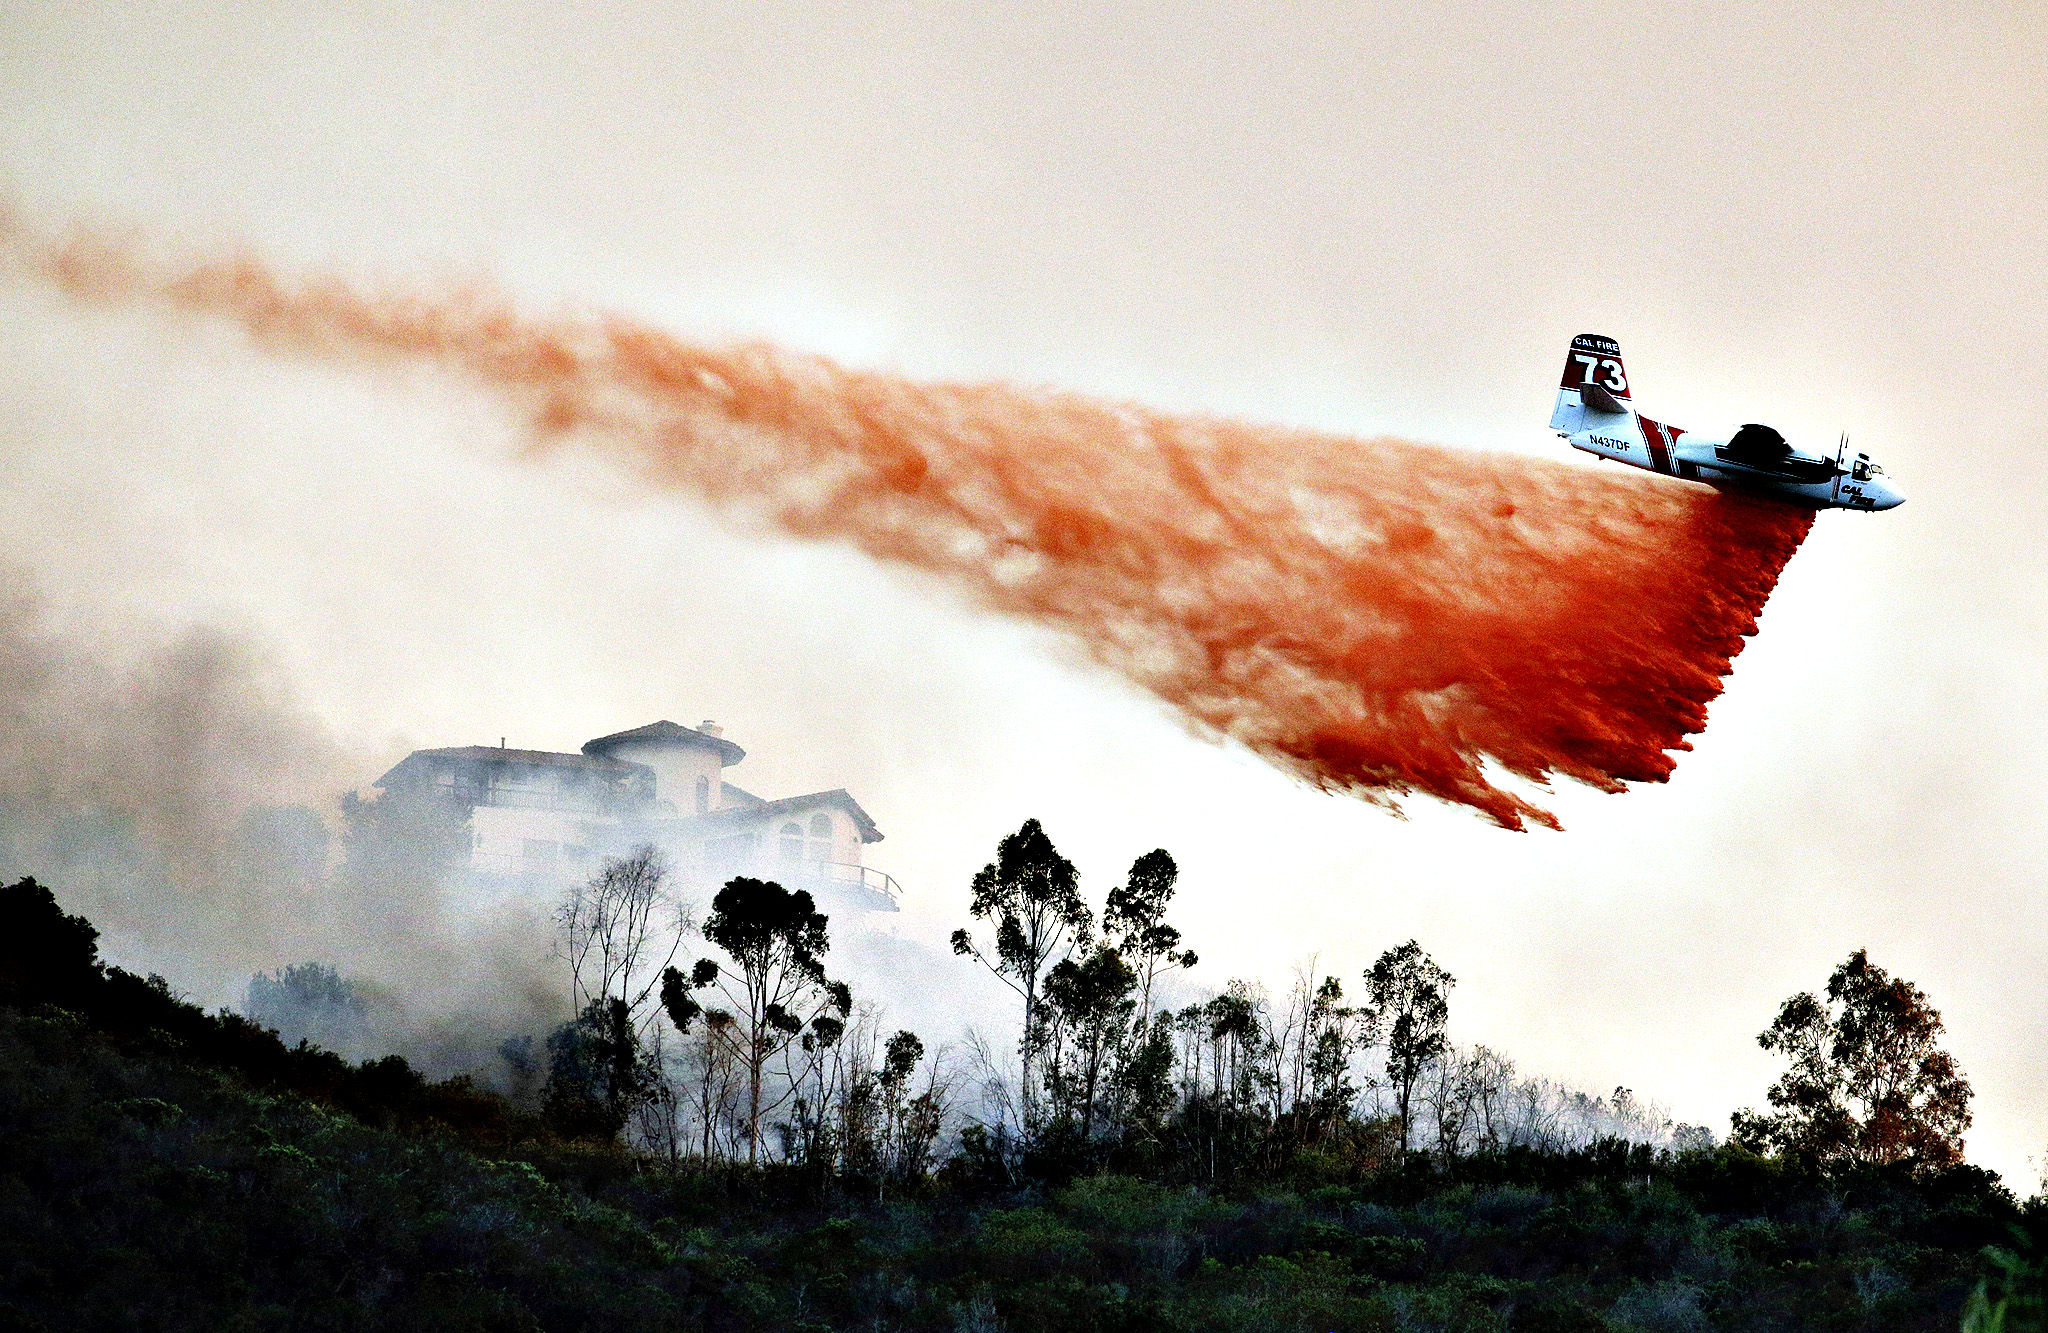 A plane drops fire retardant over a hot spot on Wednesday, May 14, 2014, in San Marcos, Calif. Wednesday, May 14, 2014, in San Marcos, Calif. Flames engulfed suburban homes and shot up along canyon ridges in one of the worst of several blazes that broke out Wednesday in Southern California during a second day of a sweltering heat wave, taxing fire crews who fear the scattered fires mark only the beginning of a long wildfire season.